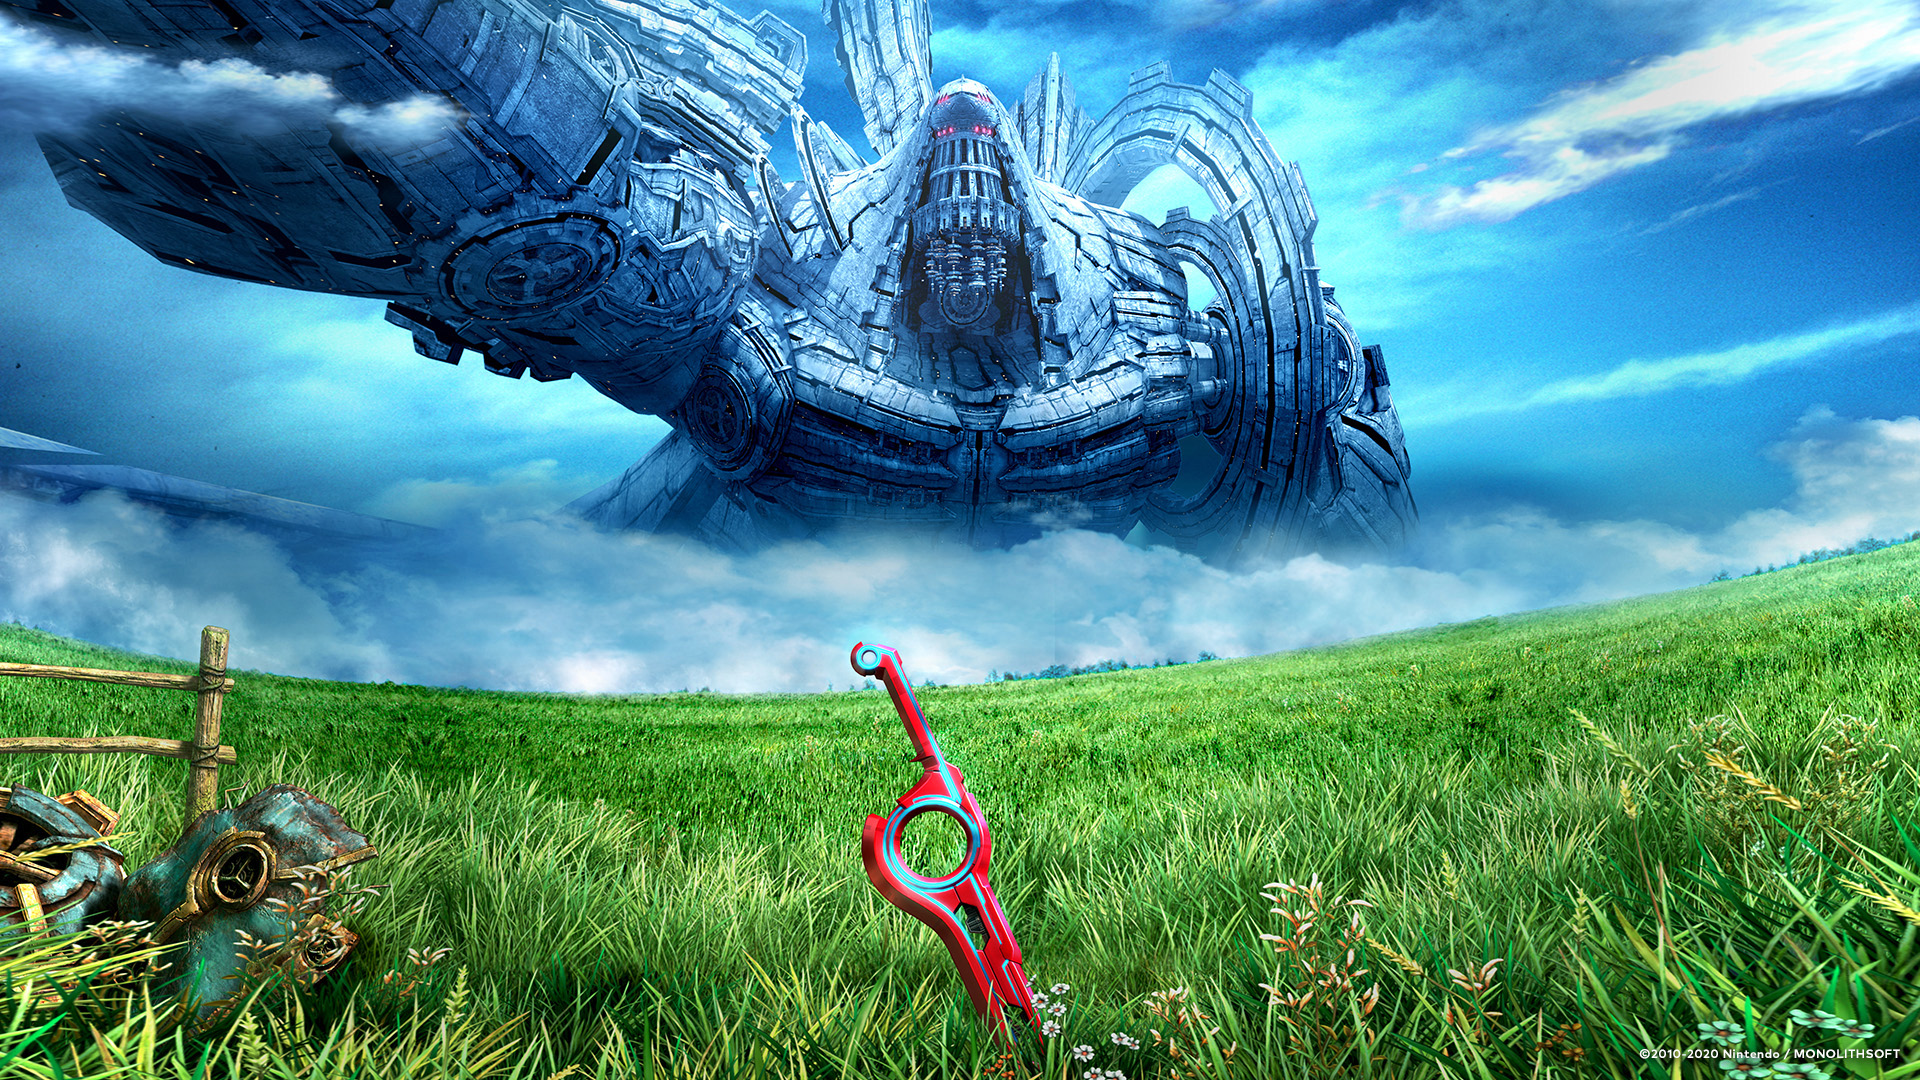 Server maintenance at Monolith Soft on the 8th September brings speculation of new Xenoblade, and Nintendo Direct